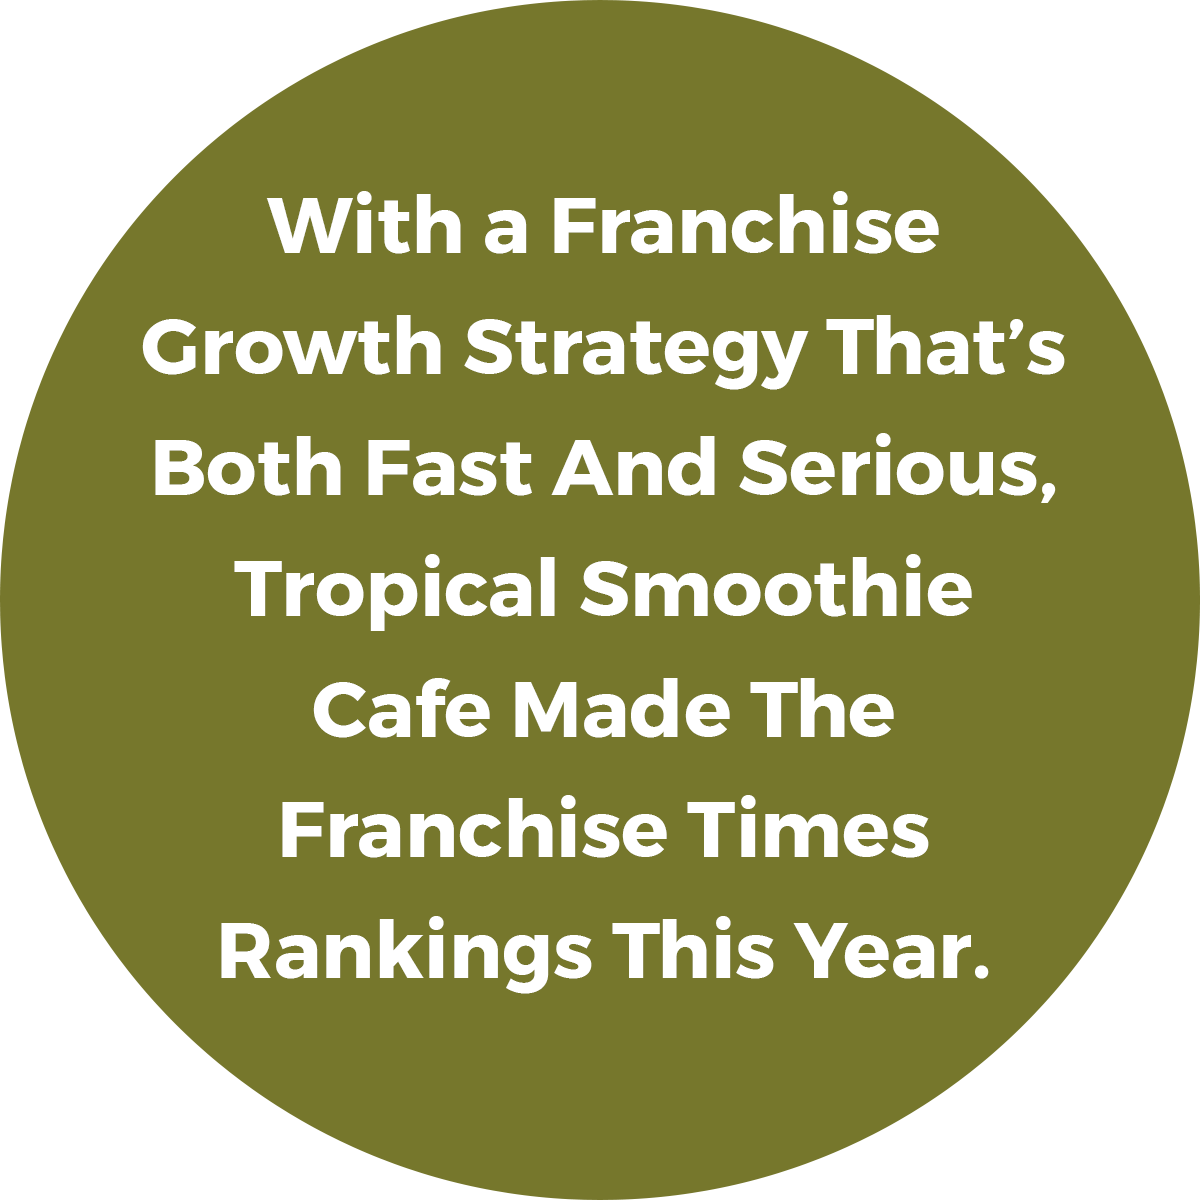 With A Franchise Growth Strategy That's Both Fast and Serious, Tropical Smoothie Cafe Made The Franchise Times Rankings This Year.